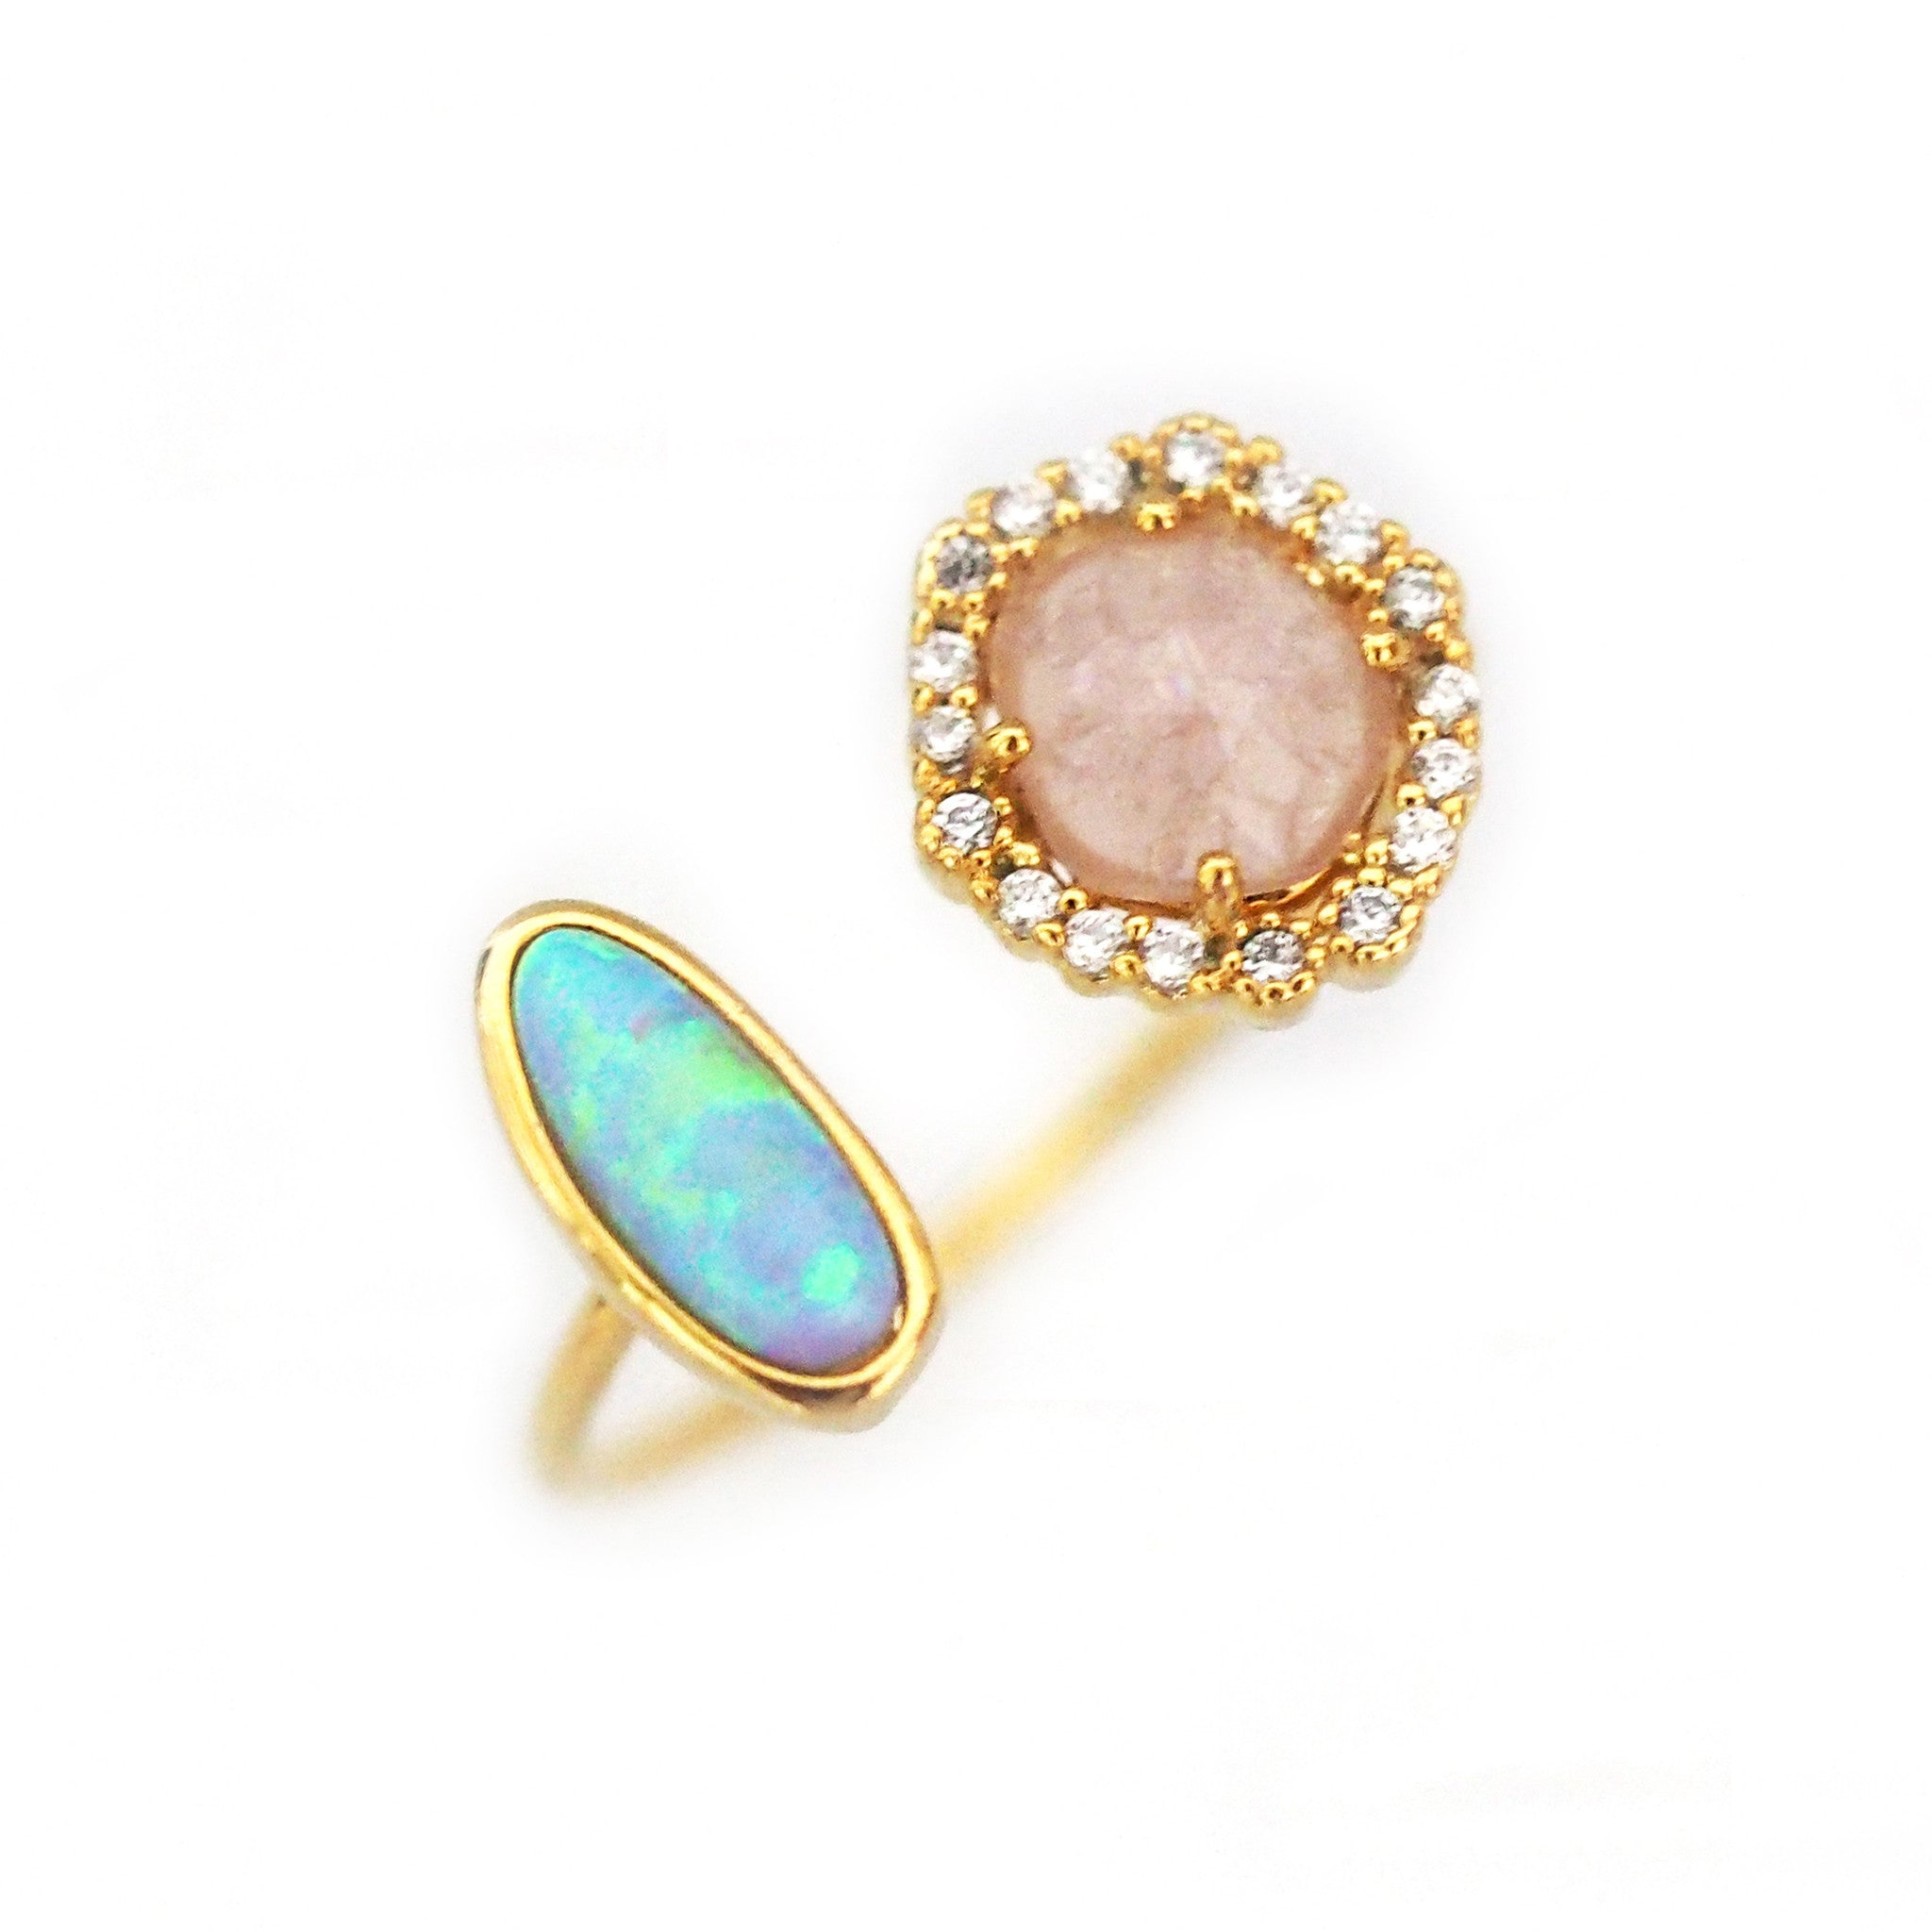 Adjustable Gold Ring with Opal Stone and Rose Crystal